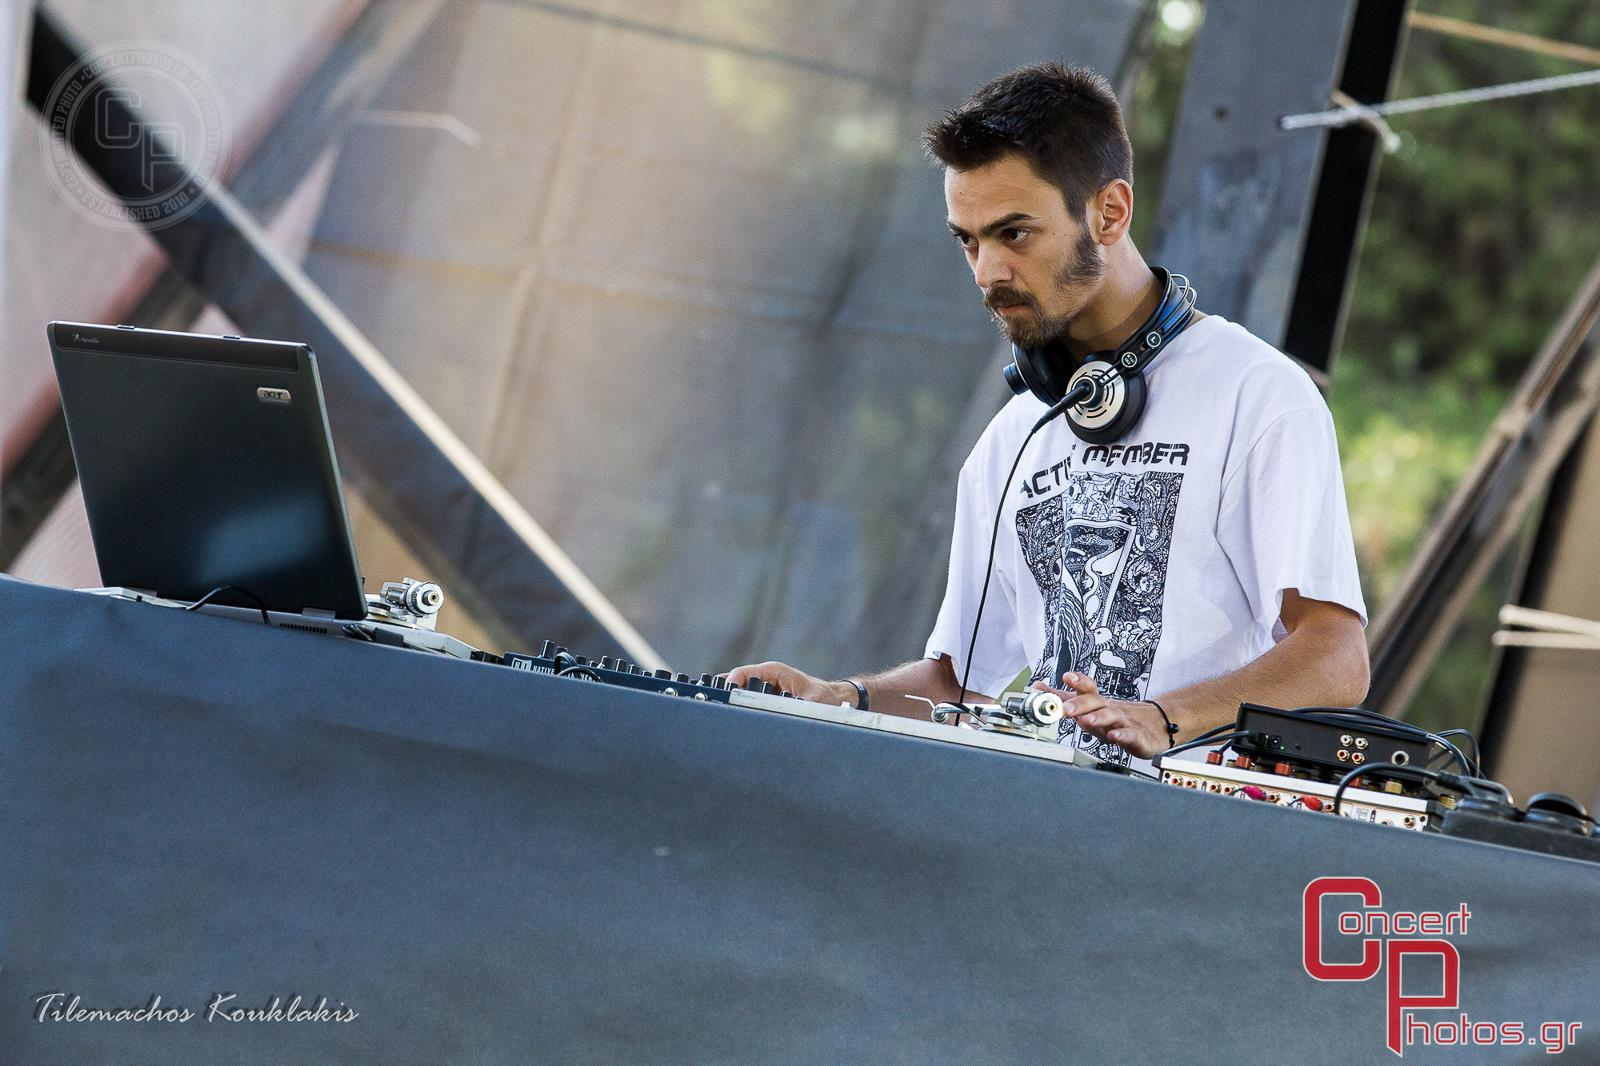 Rockwave 2014-Rockwave 2014 - Day 1 photographer:  - Rockwave-2014-45